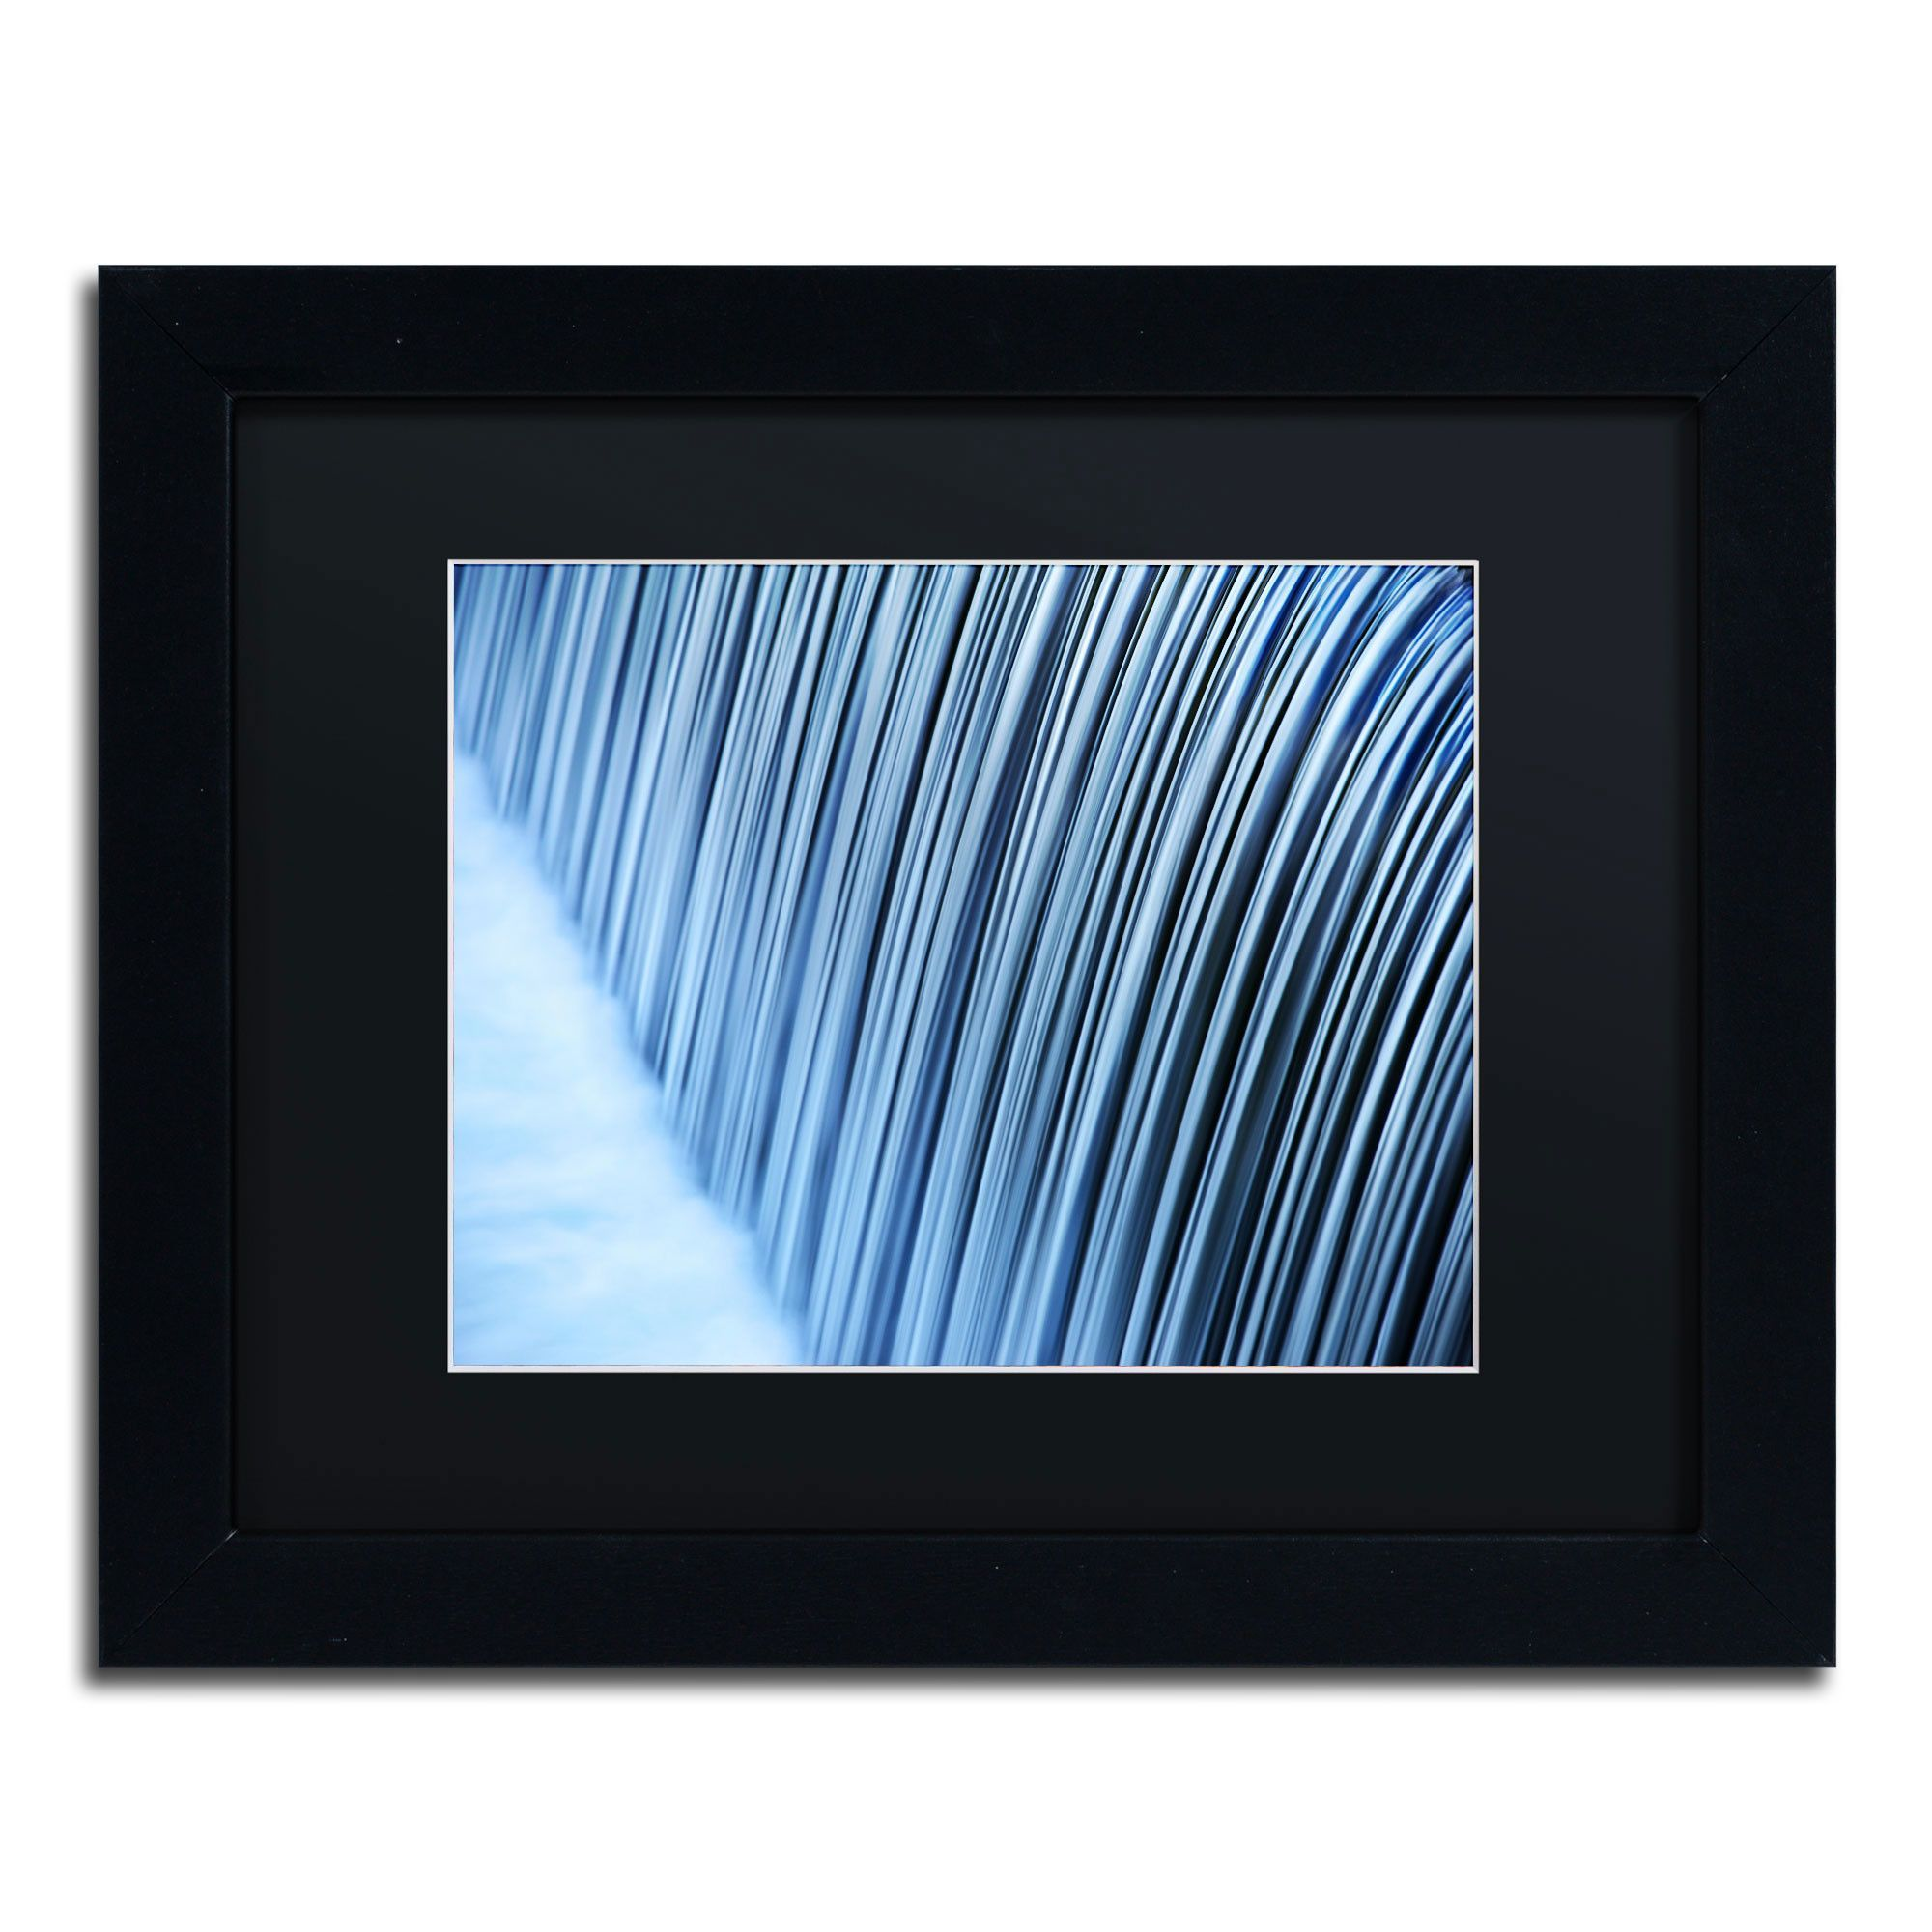 'Liquid State' by Philippe Sainte-Laudy Framed Photographic Print